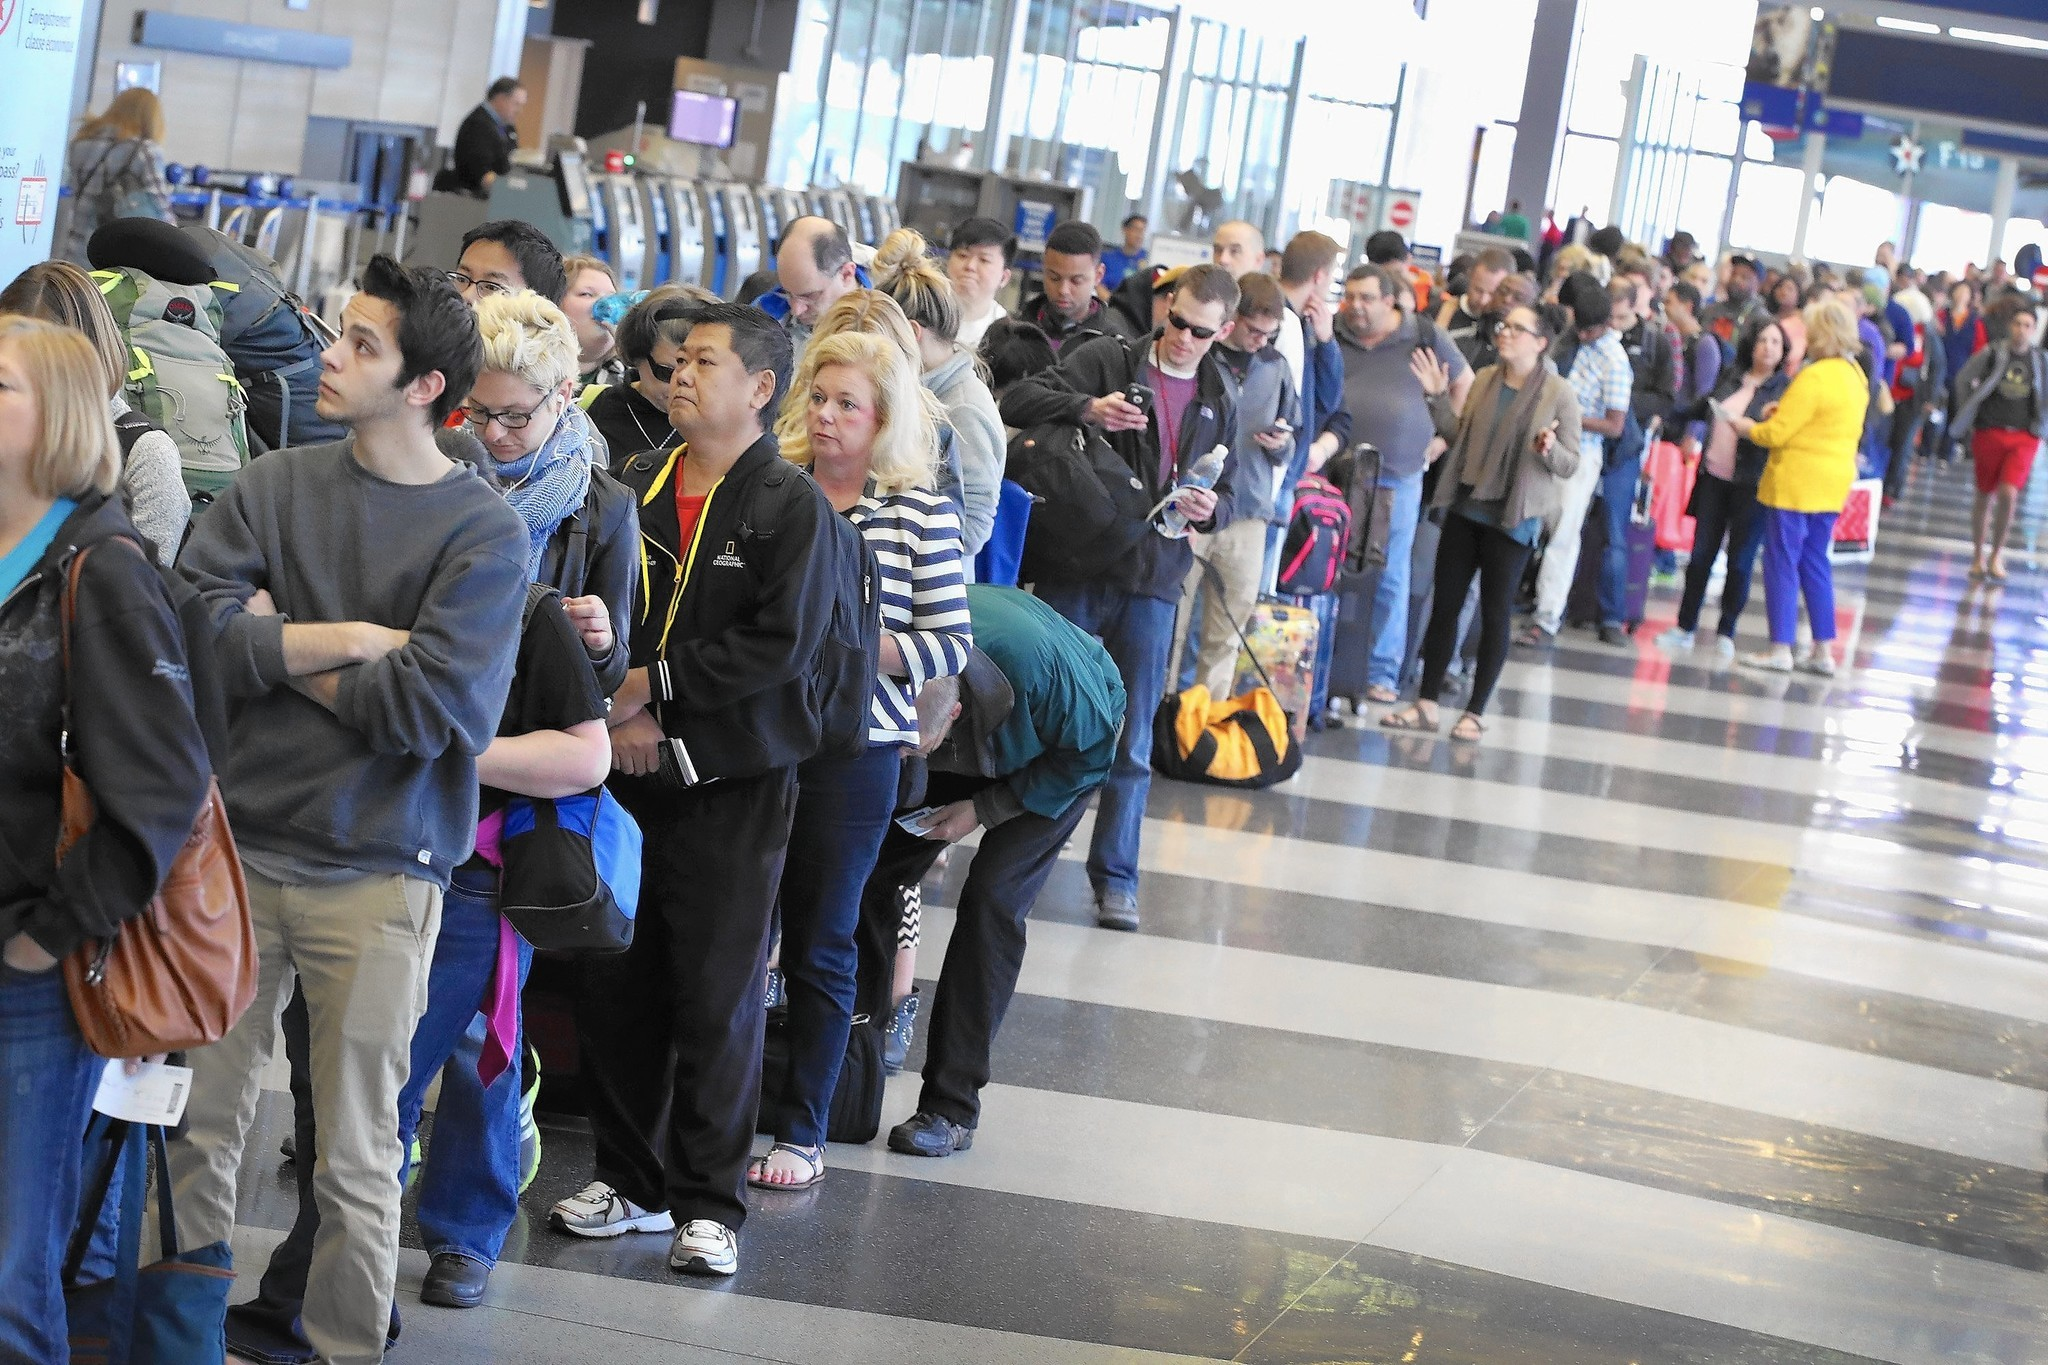 Lehigh Valley residents can sign up for TSA program at LVIA to bypass security lines - The Morning Call